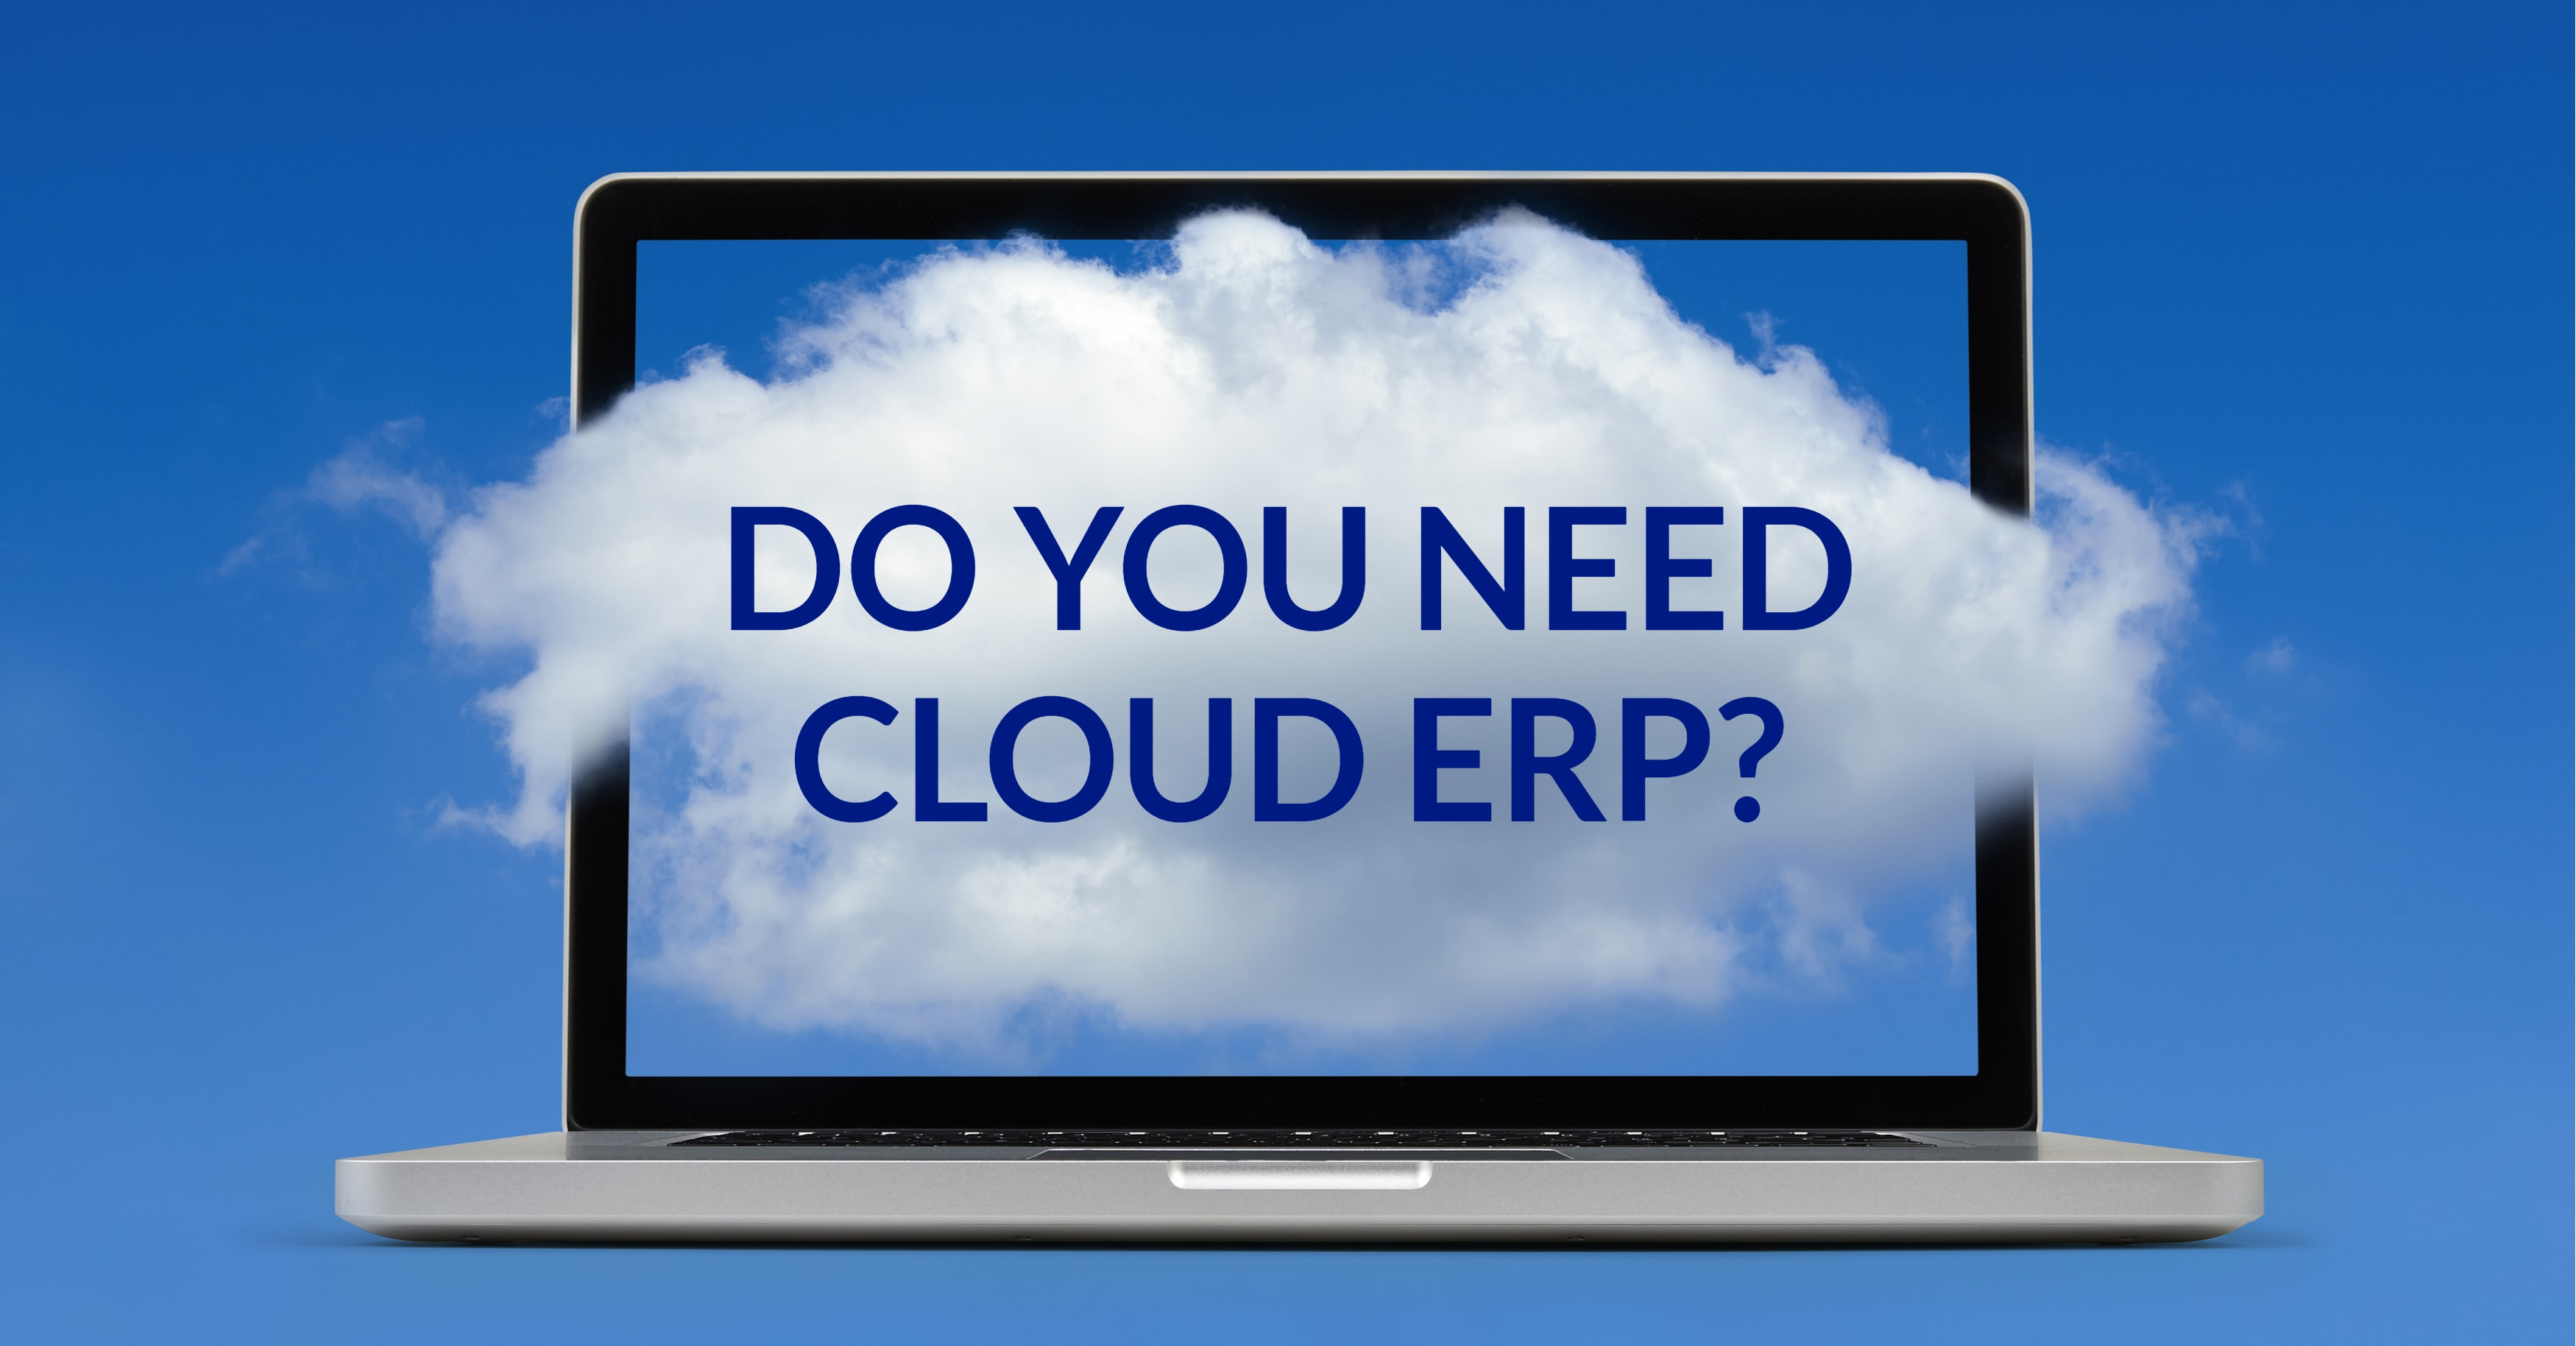 Do You Need Cloud ERP?